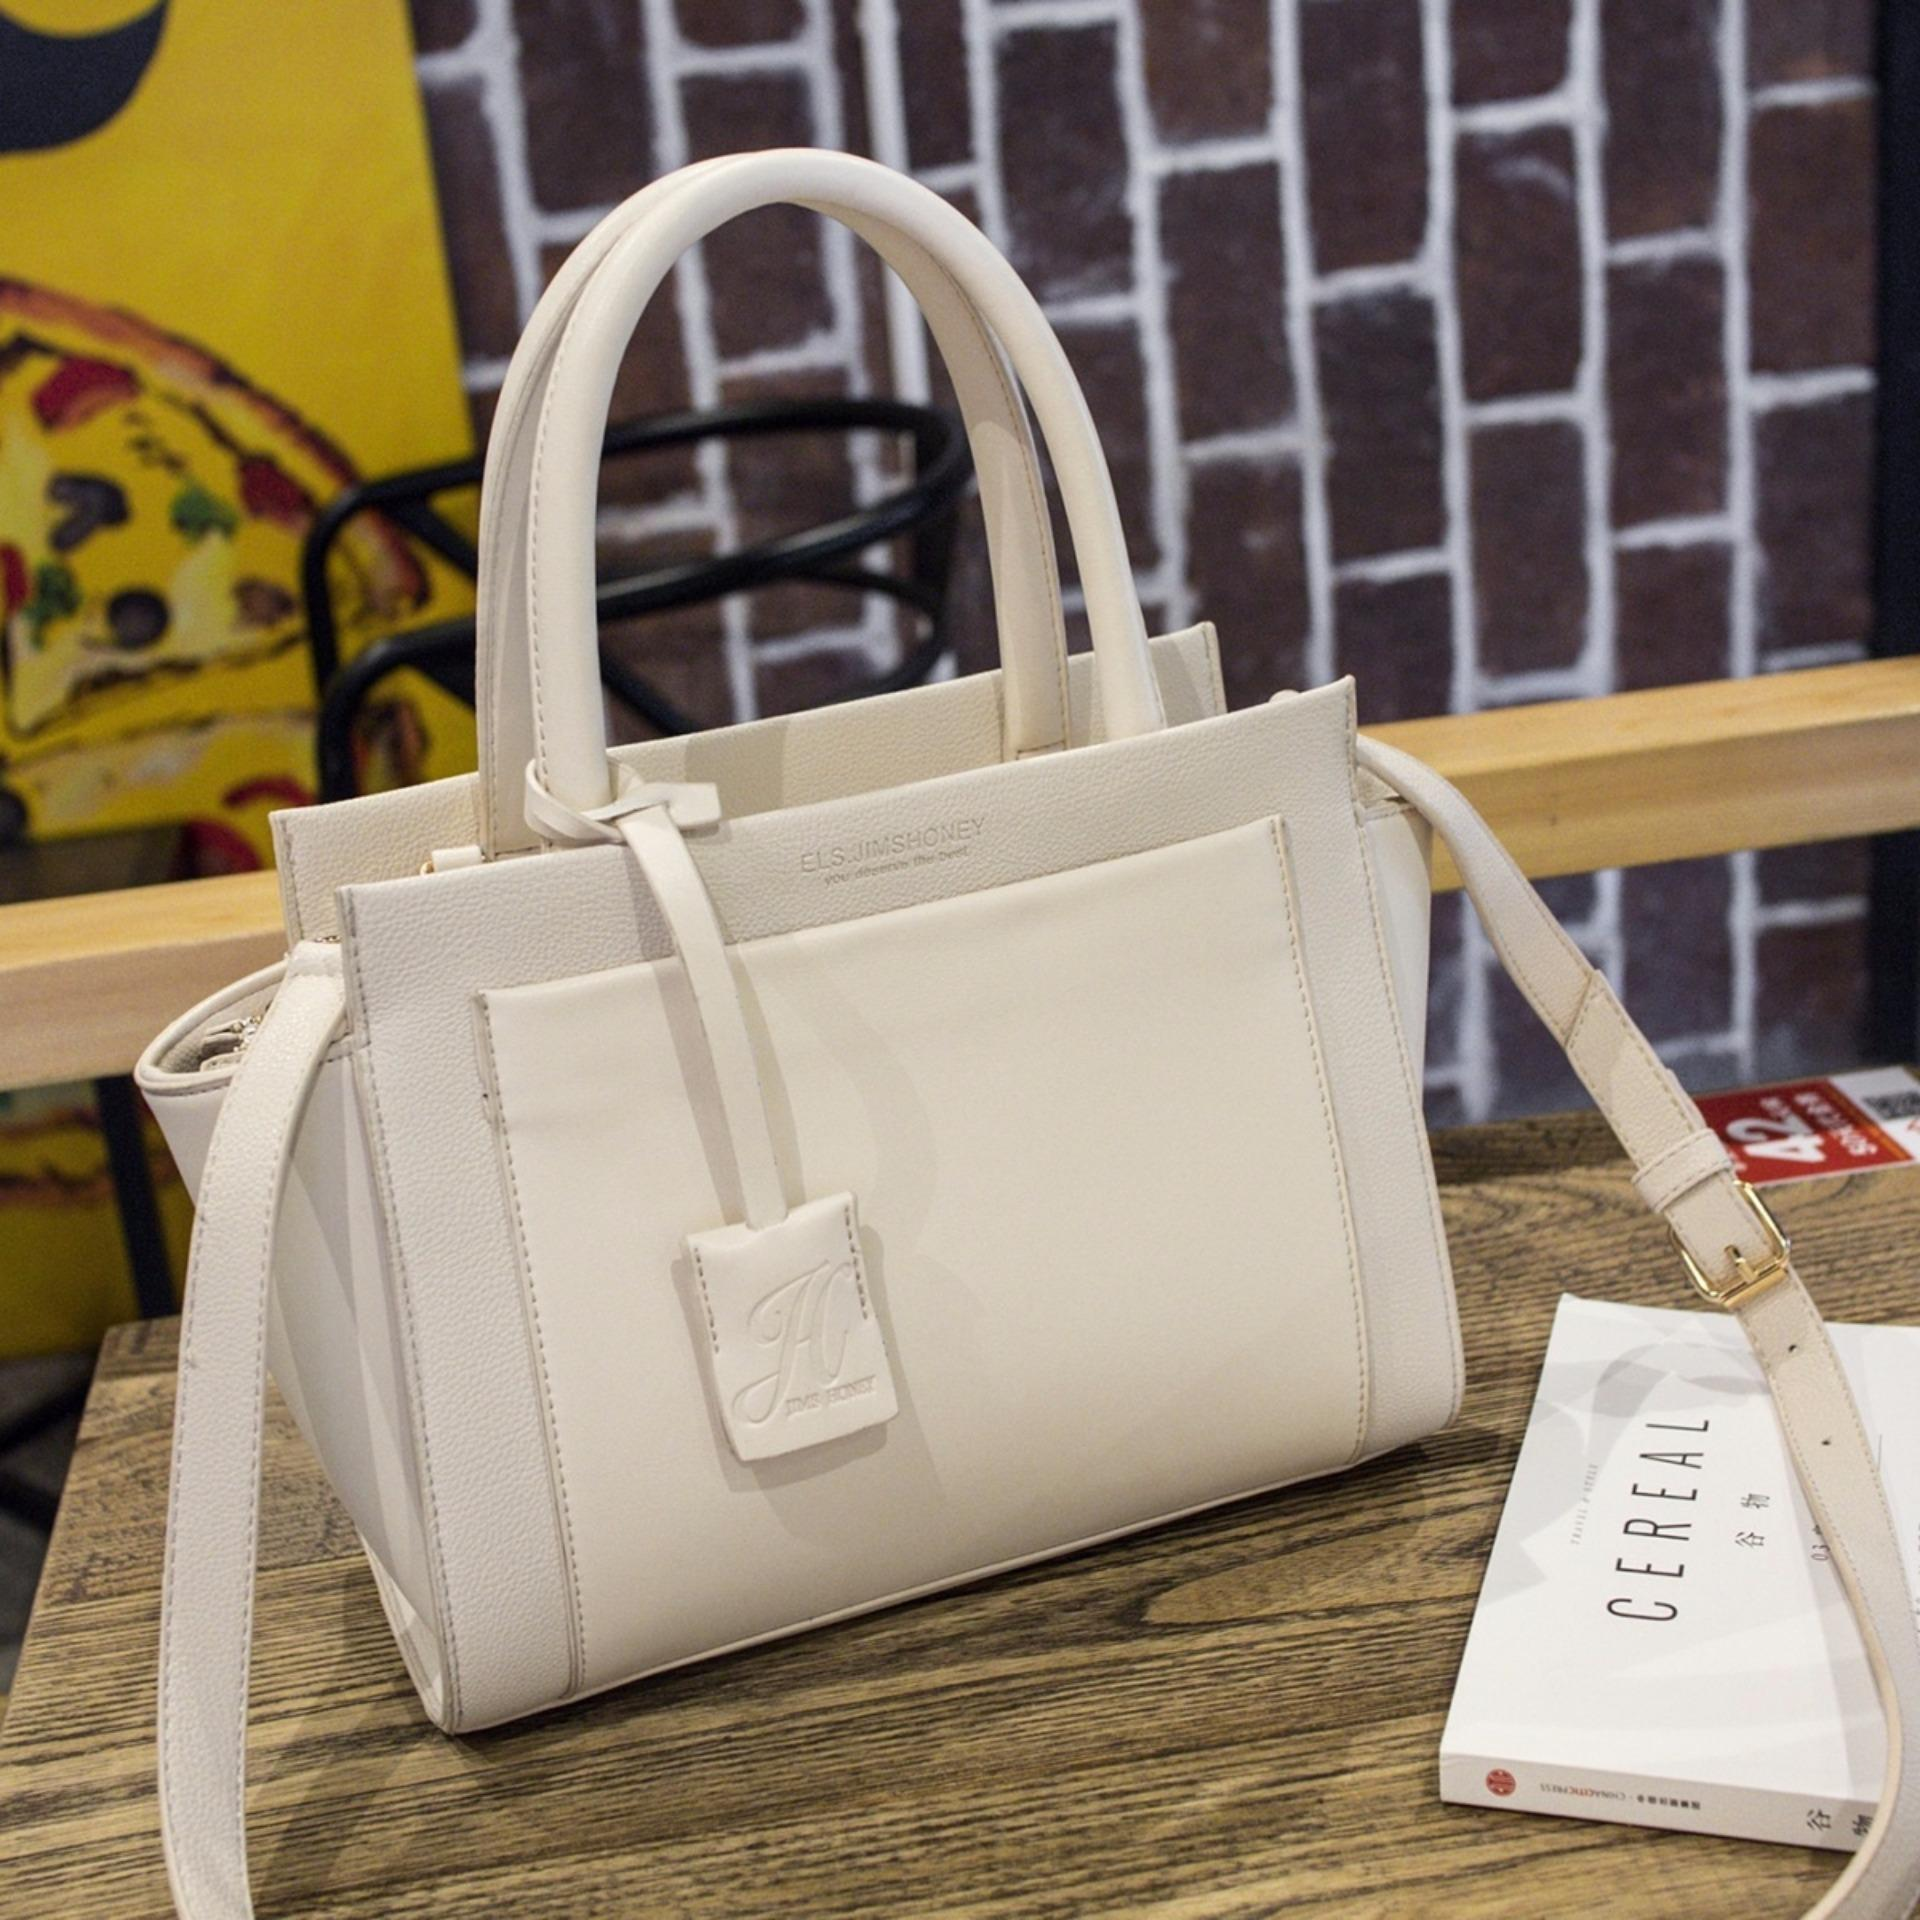 Jual Jims Honey New Fashion Bag Celine Bag White Murah